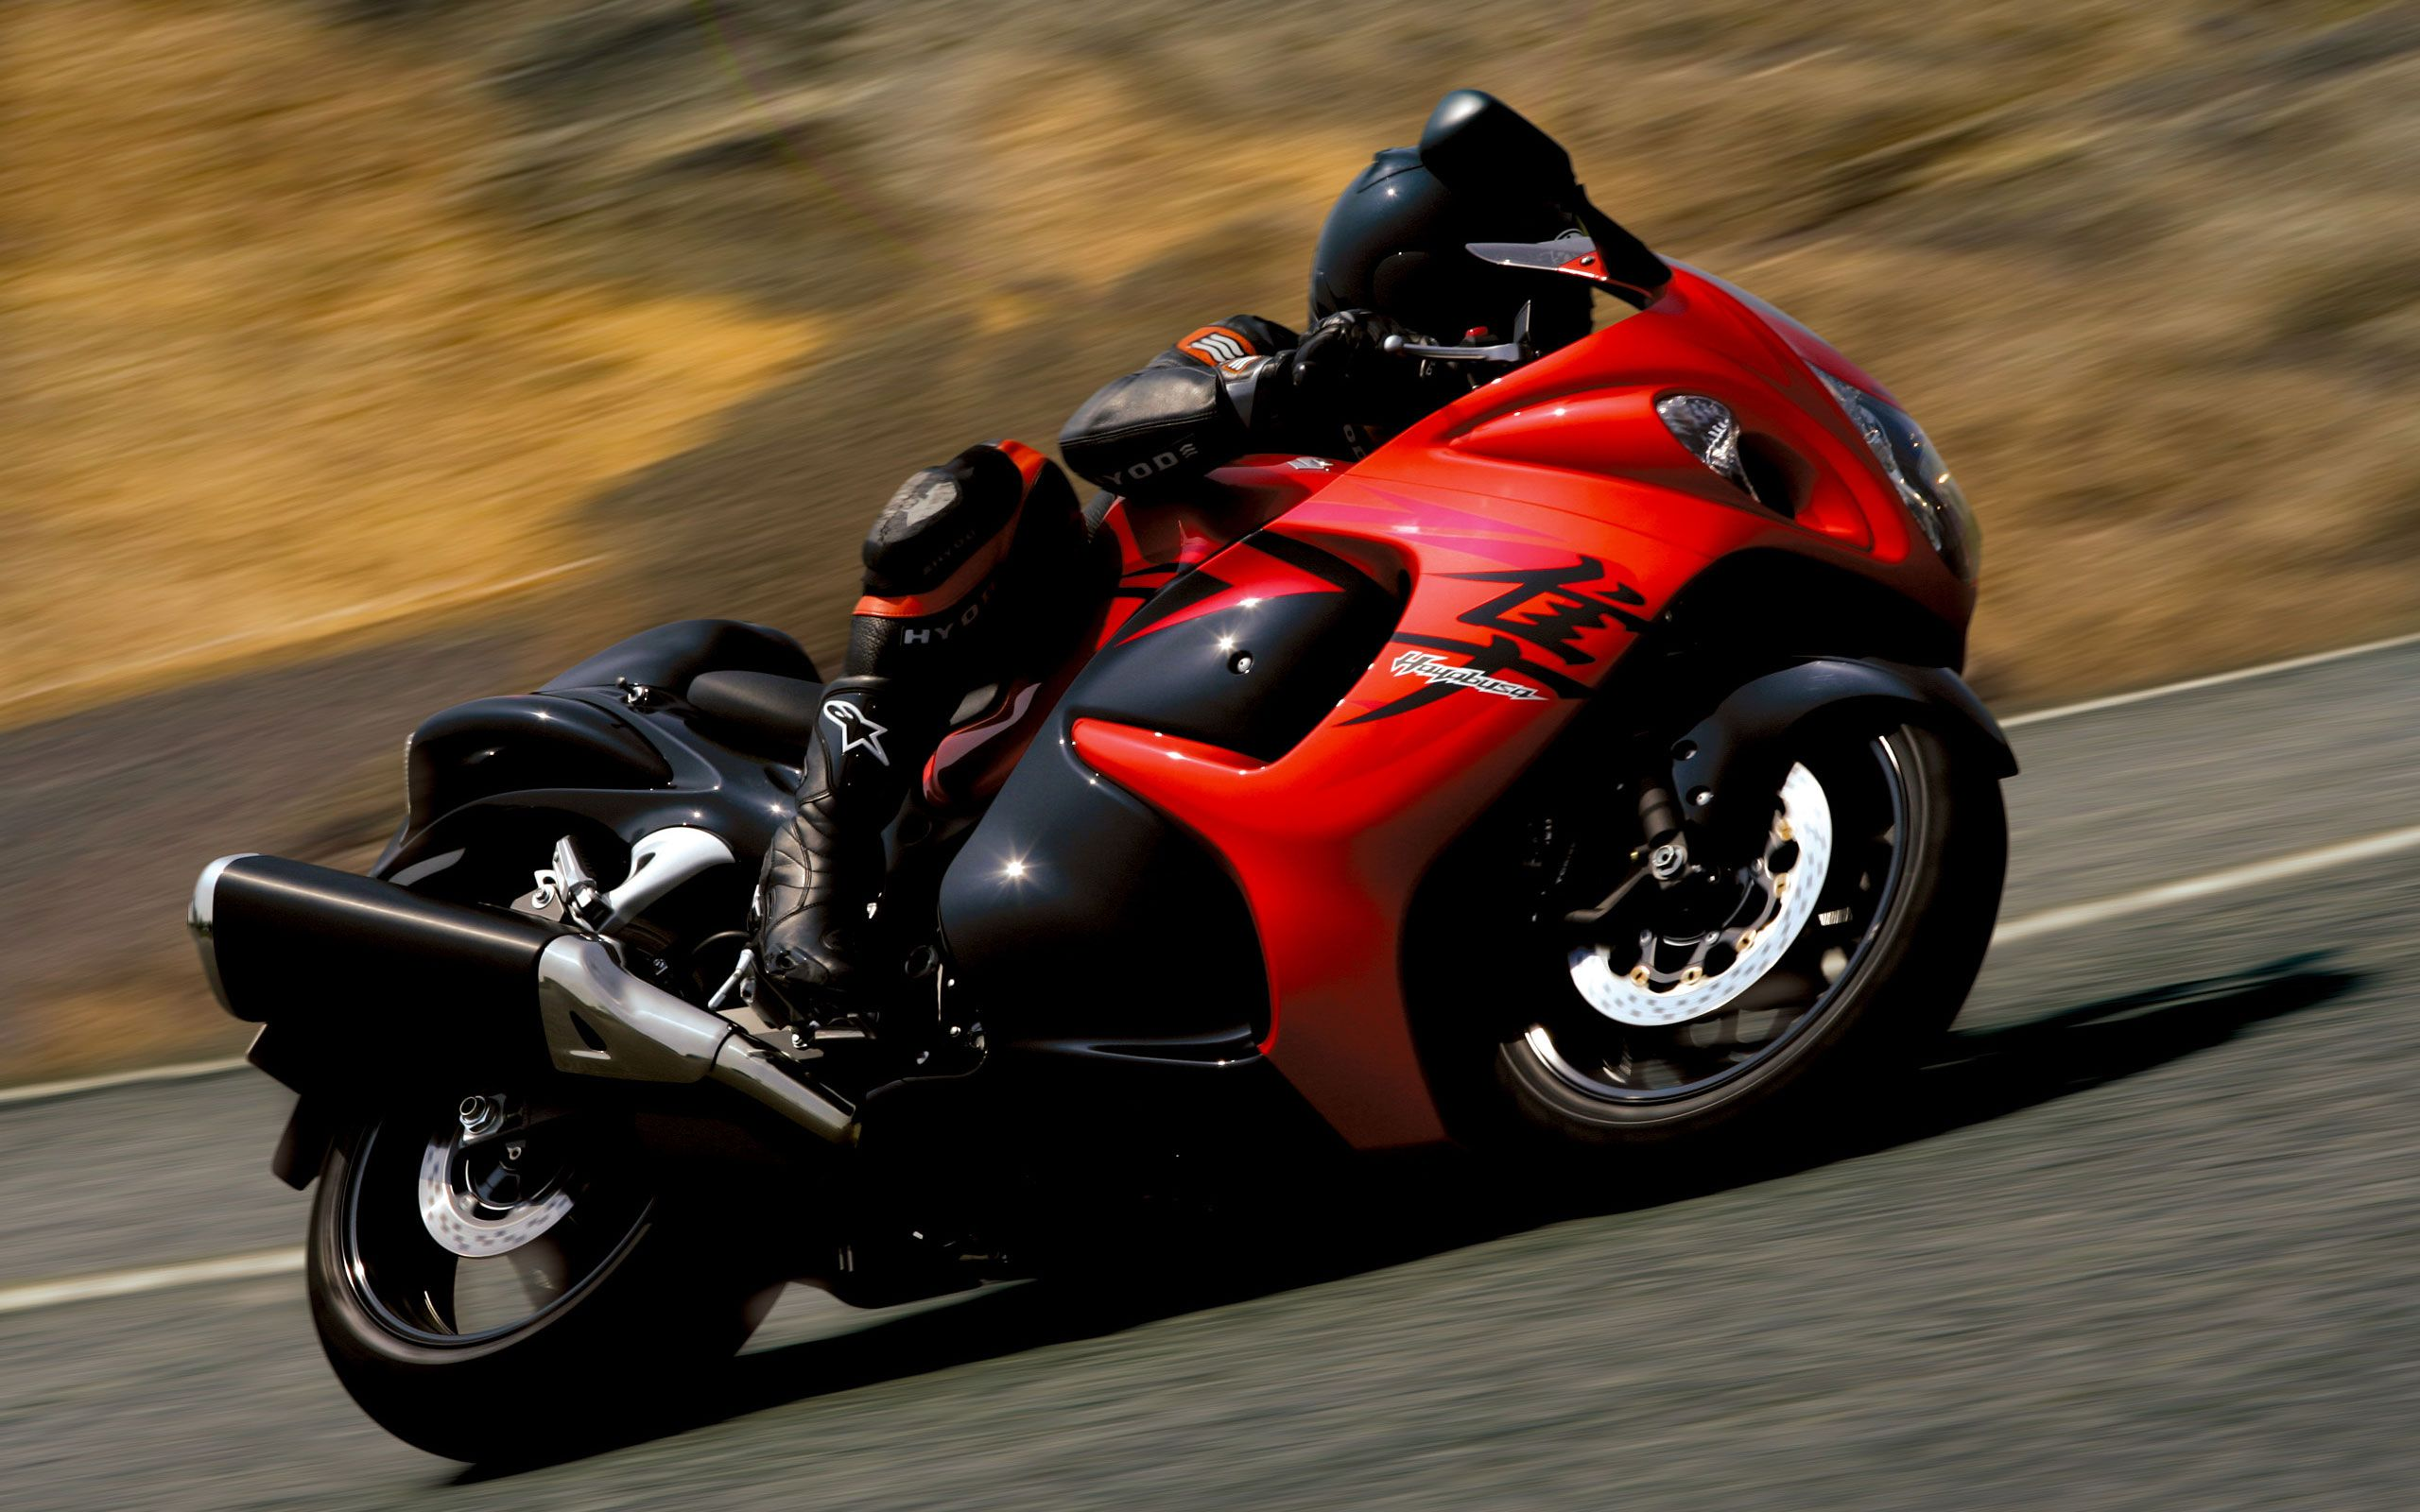 Suzuki Hayabusa Bike Wallpapers Free Full Hd Wallpapers For